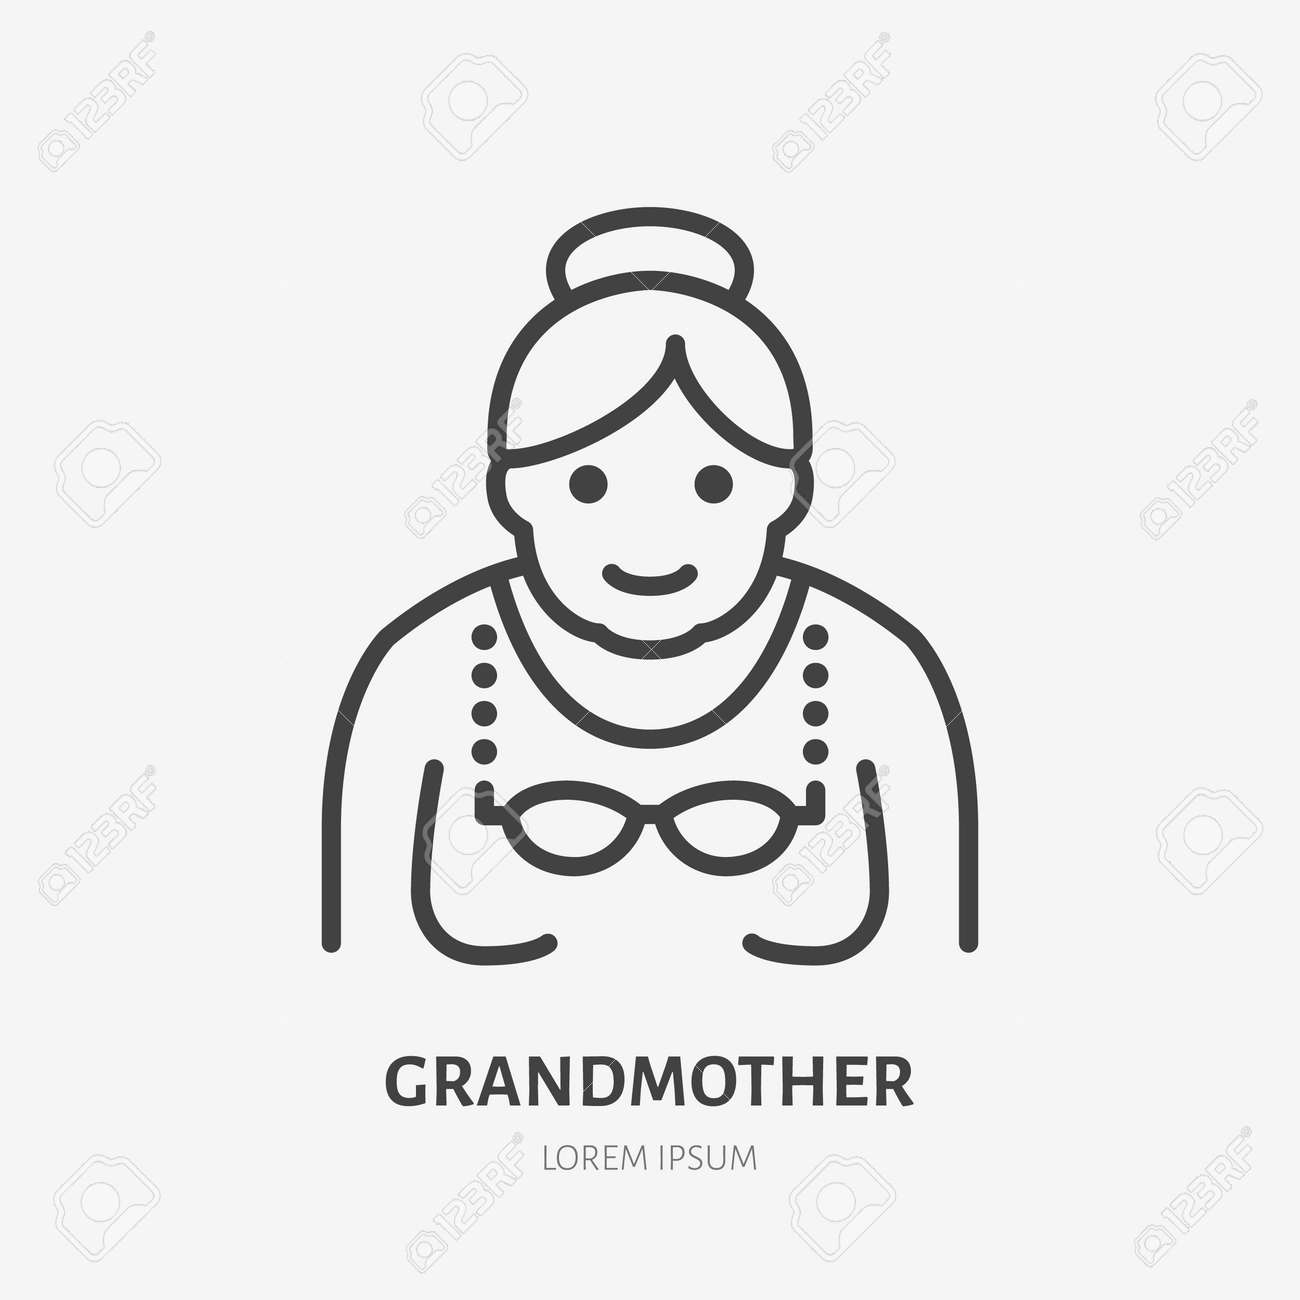 Grandmother flat line icon. Vector outline illustration of old woman . Black color thin linear sign for senior person avatar. - 161710113